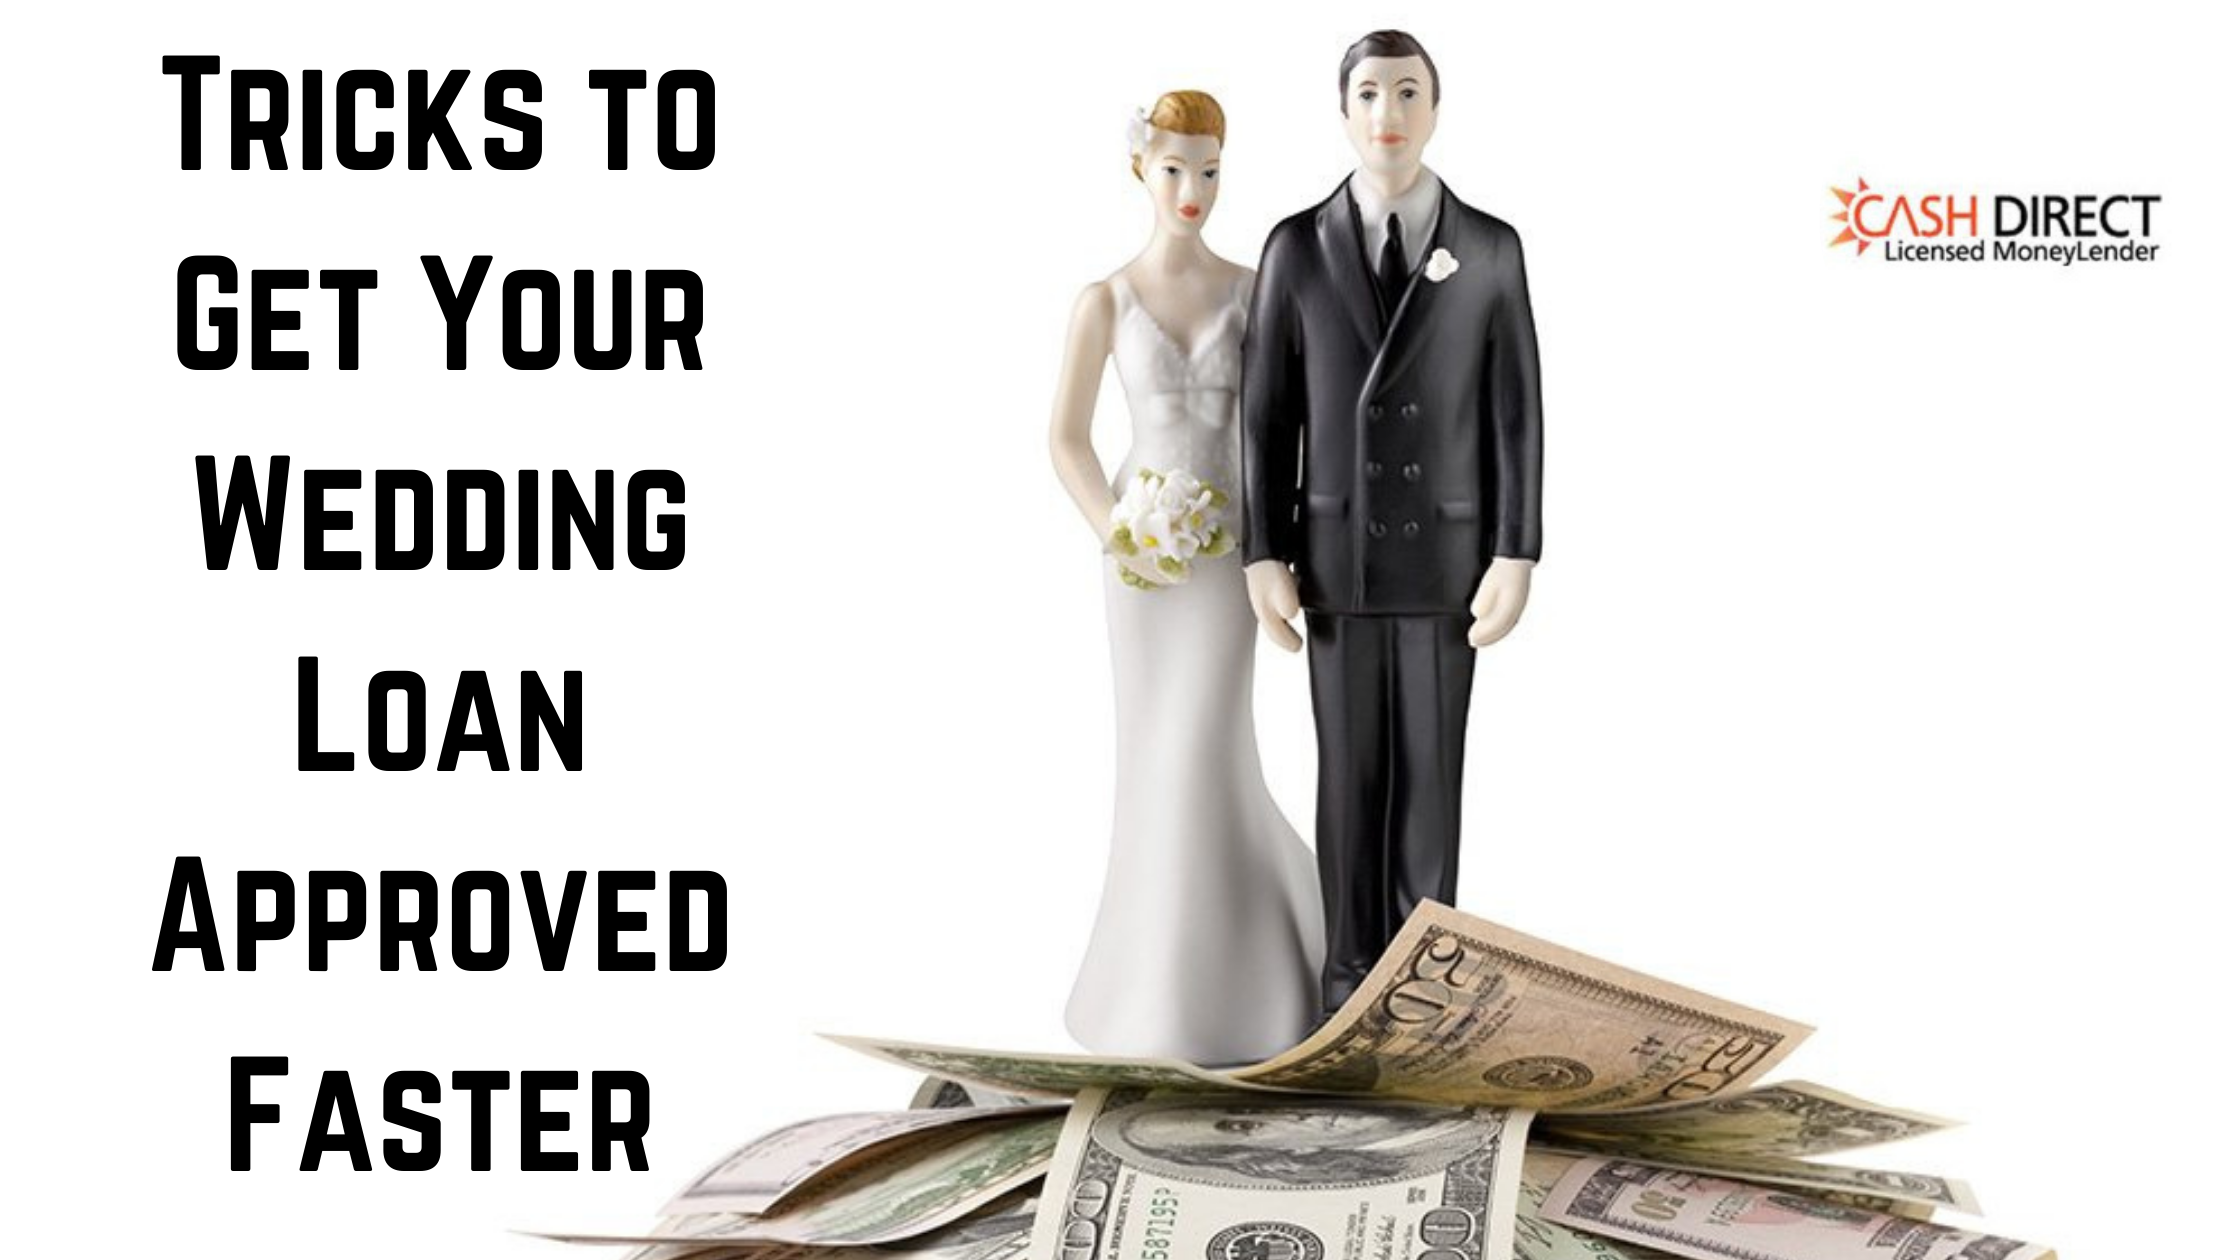 Tricks to Get Your Wedding loan Approved Faster